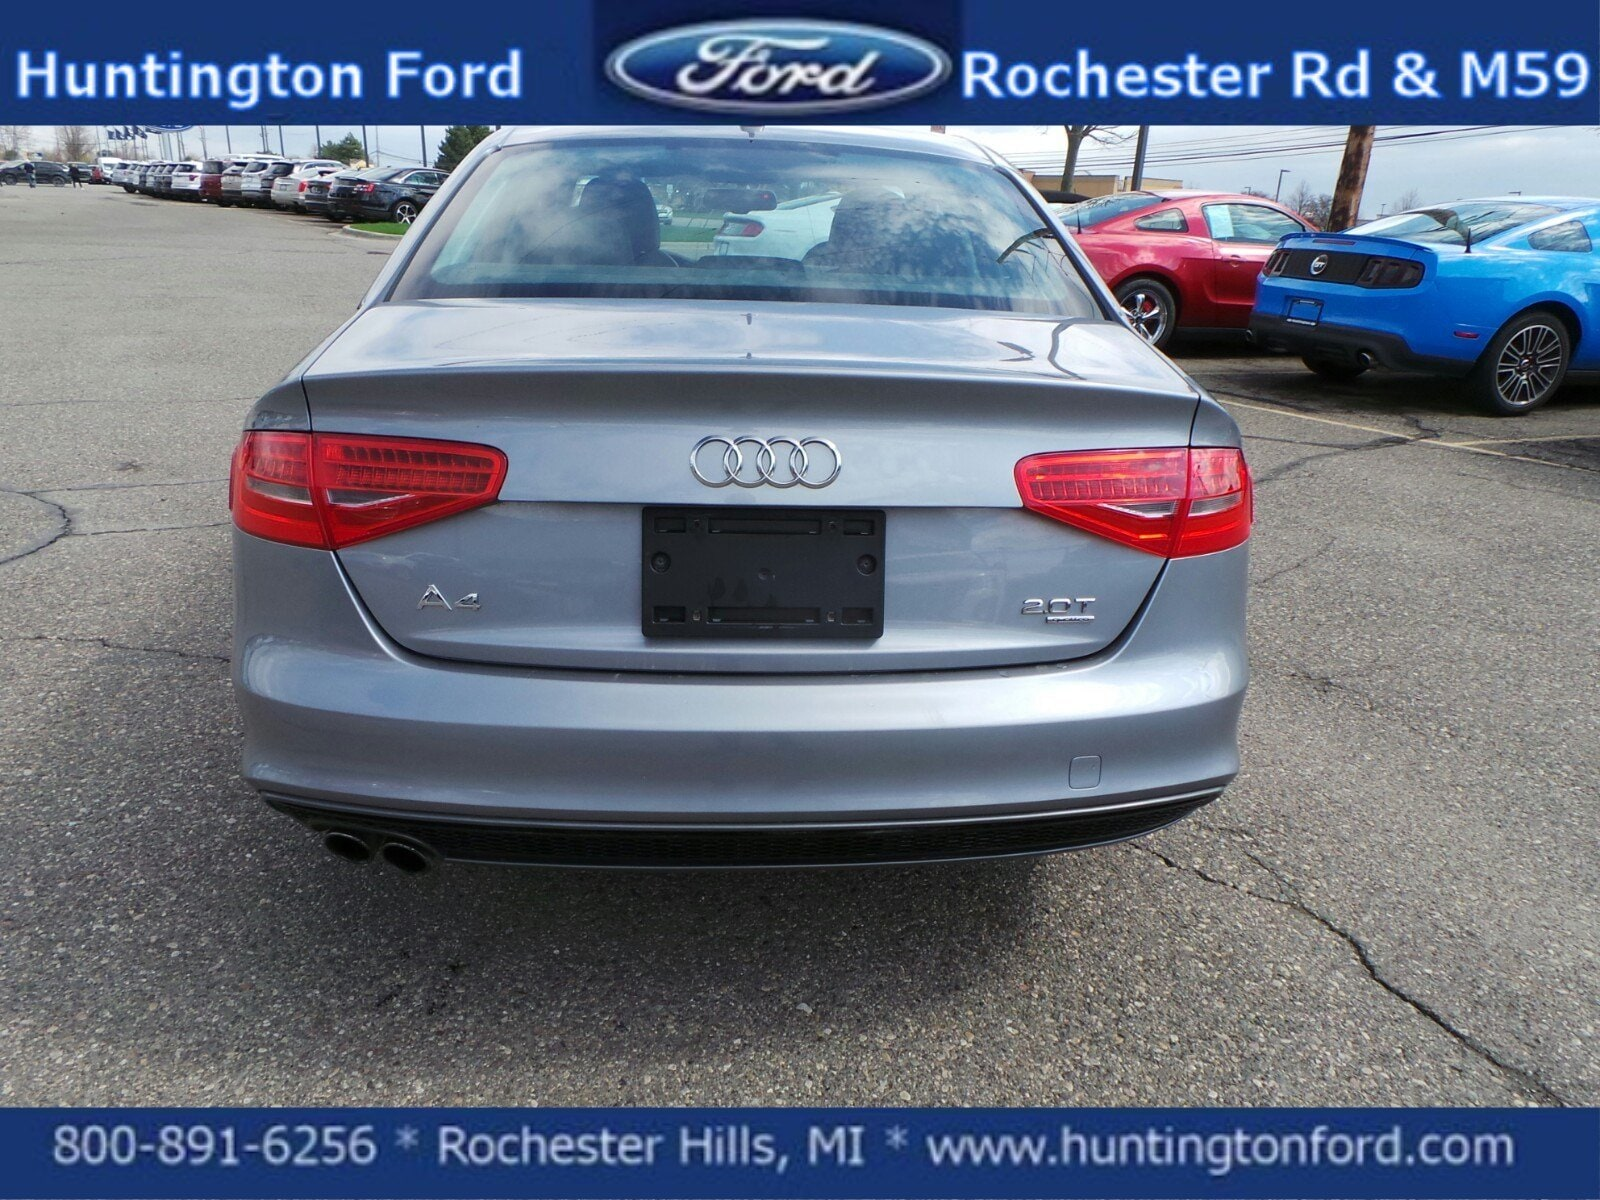 used 2015 audi a4 for sale at serra ford rochester hills vin wauffafl8fn014348 serra ford rochester hills